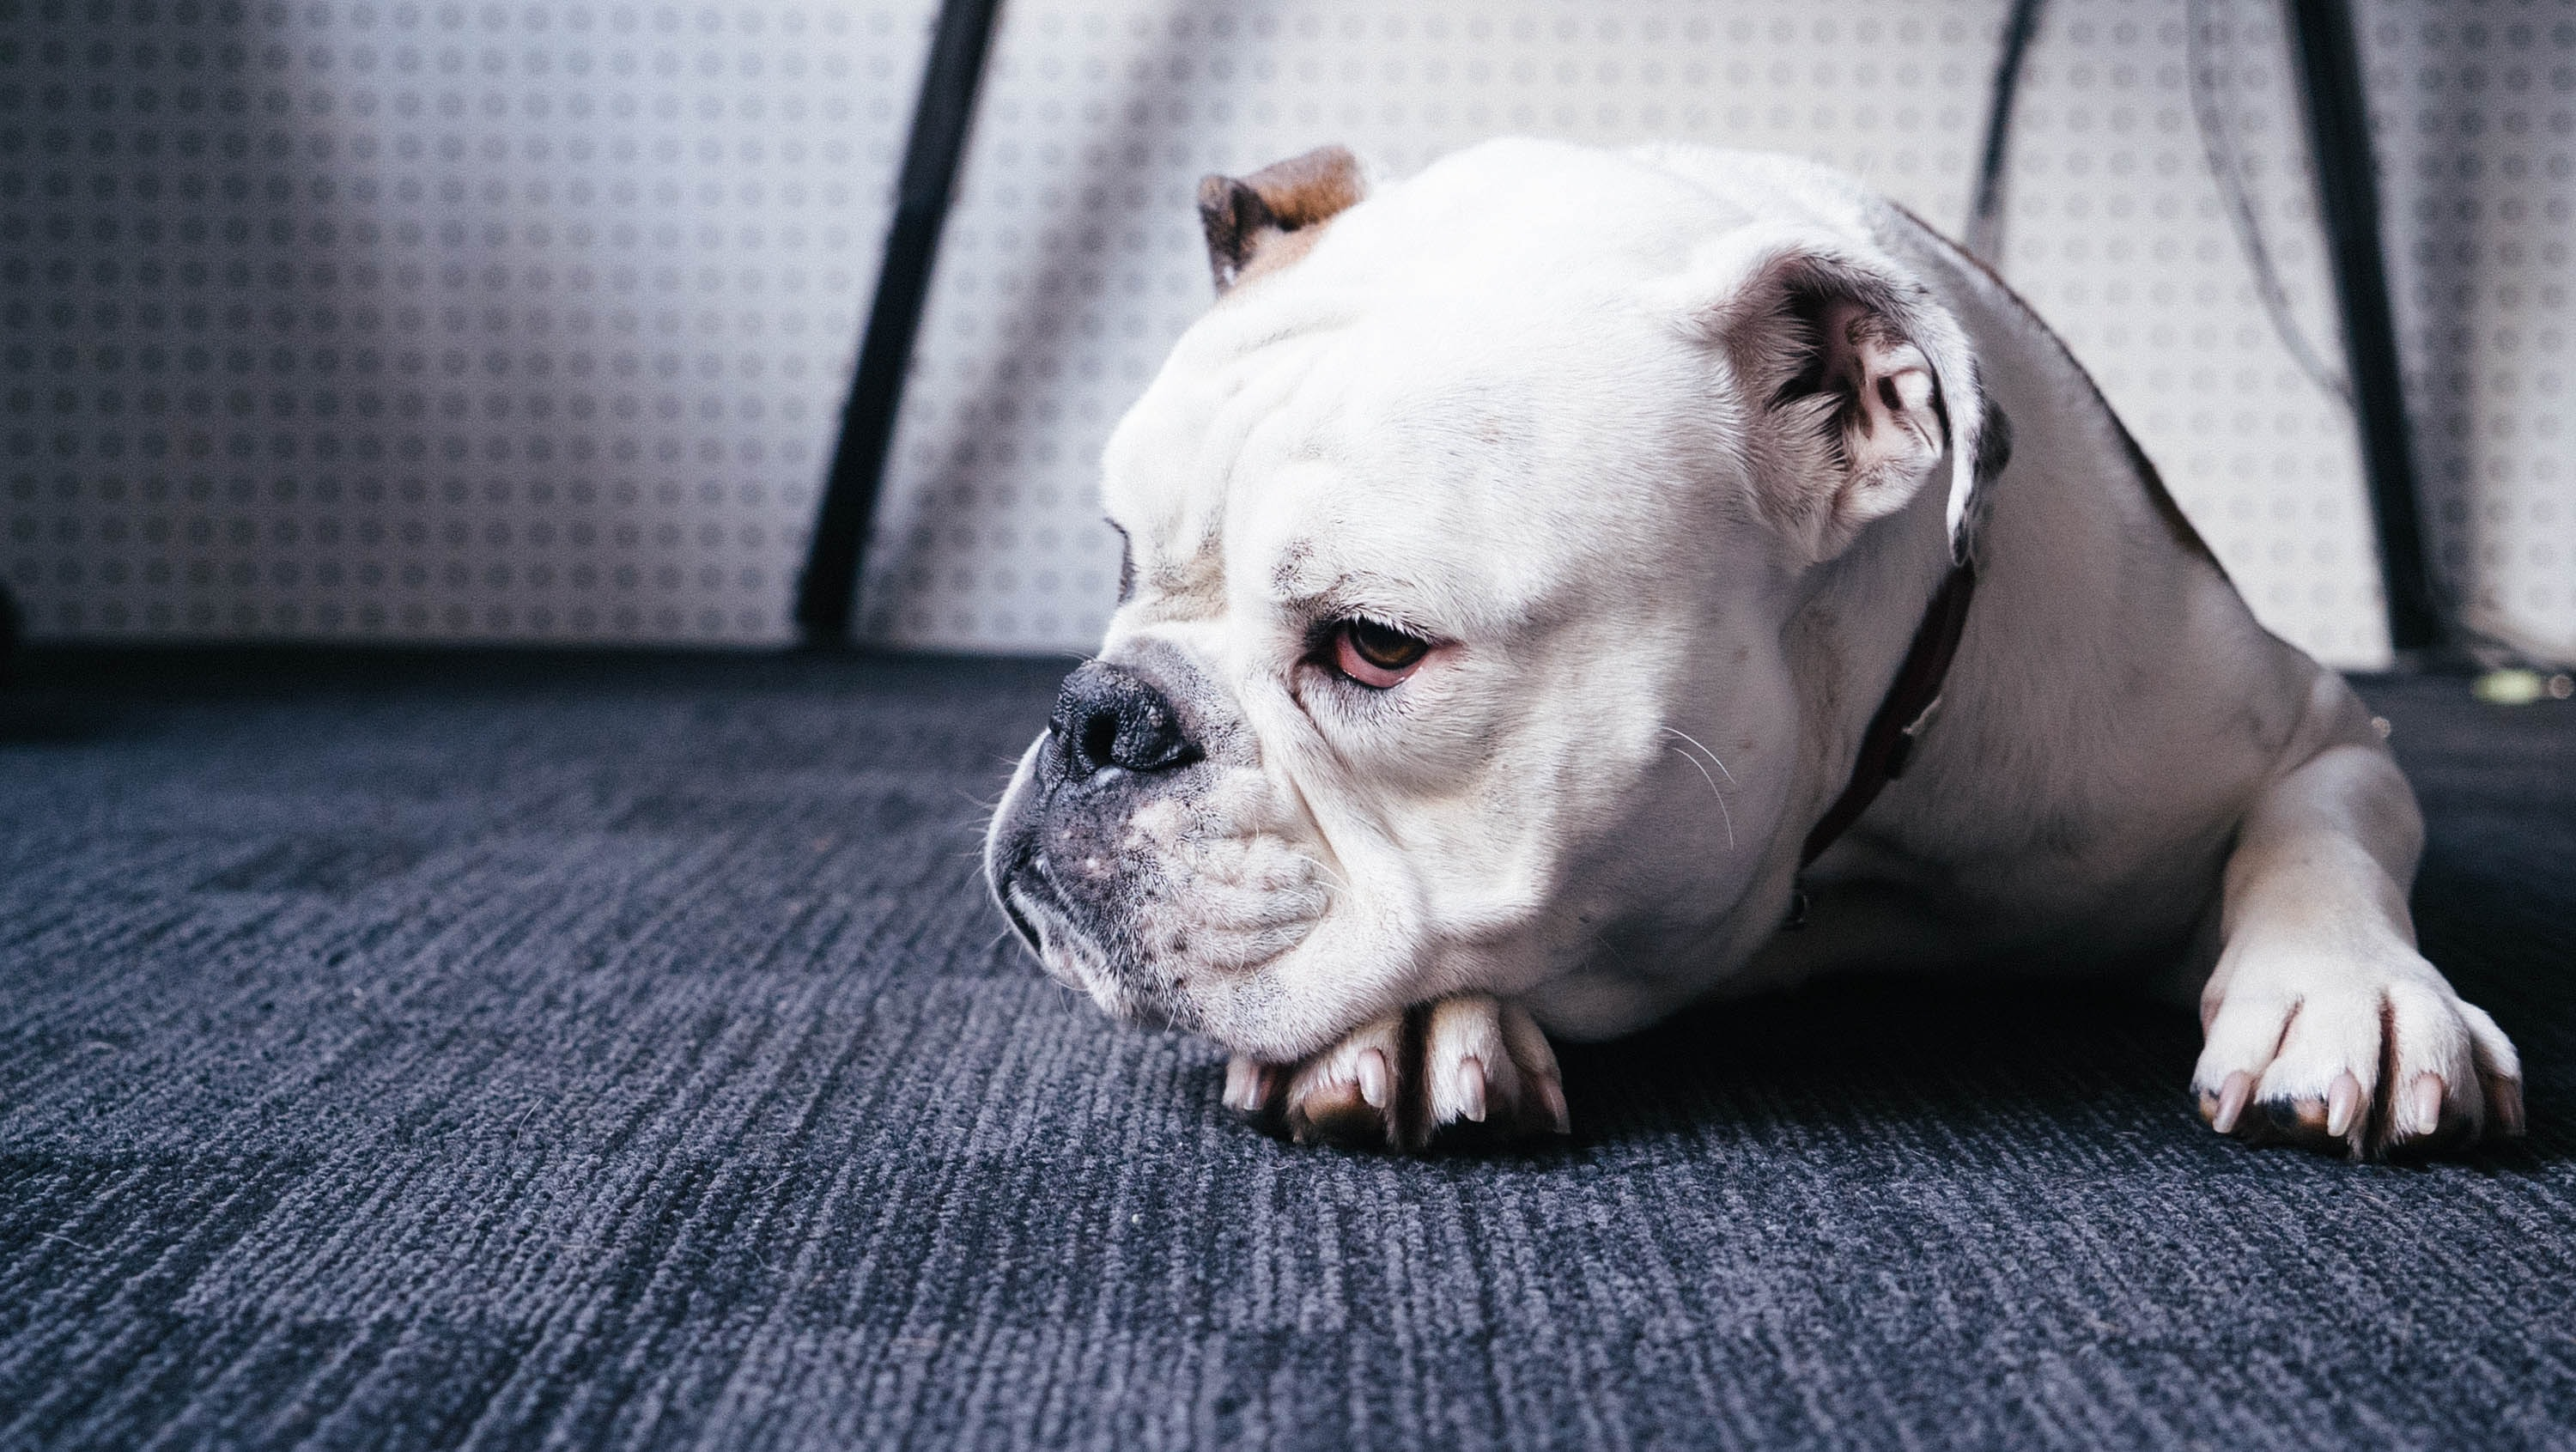 A white bulldog lying down on a carpet